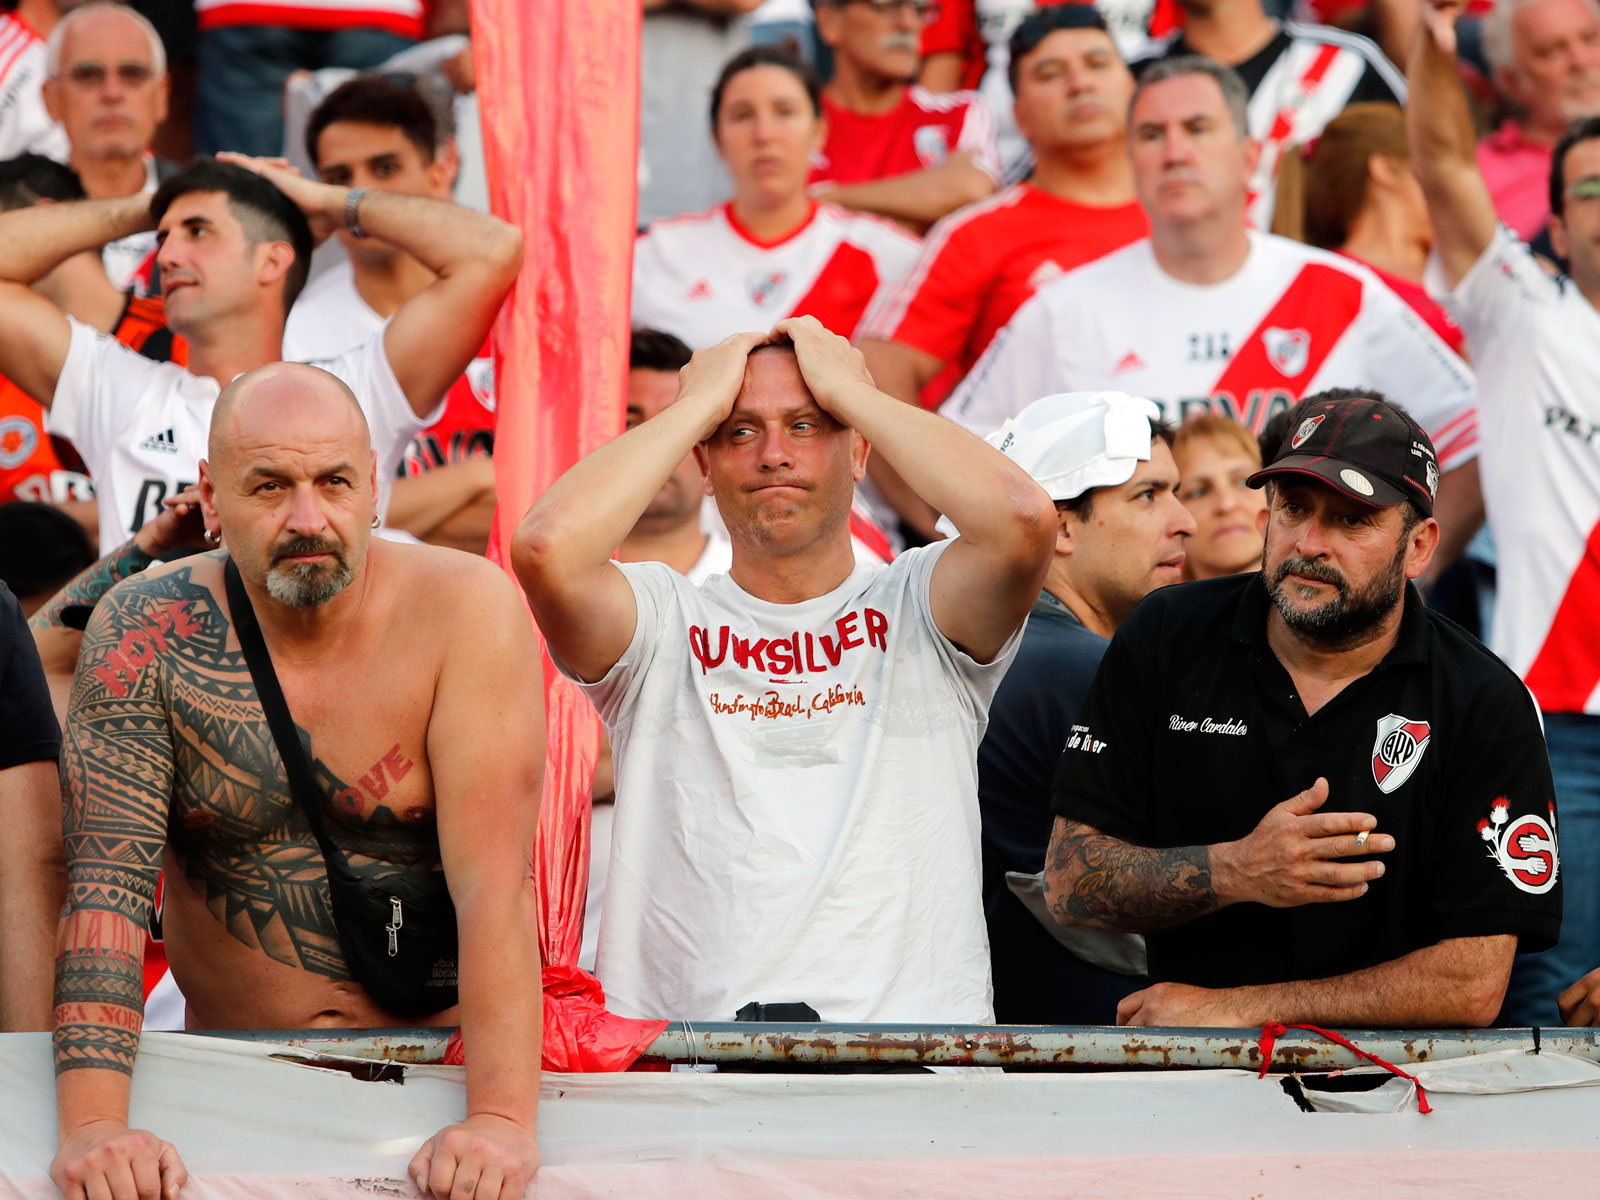 River Plate fans react to the postponement of the Copa Libertadores final